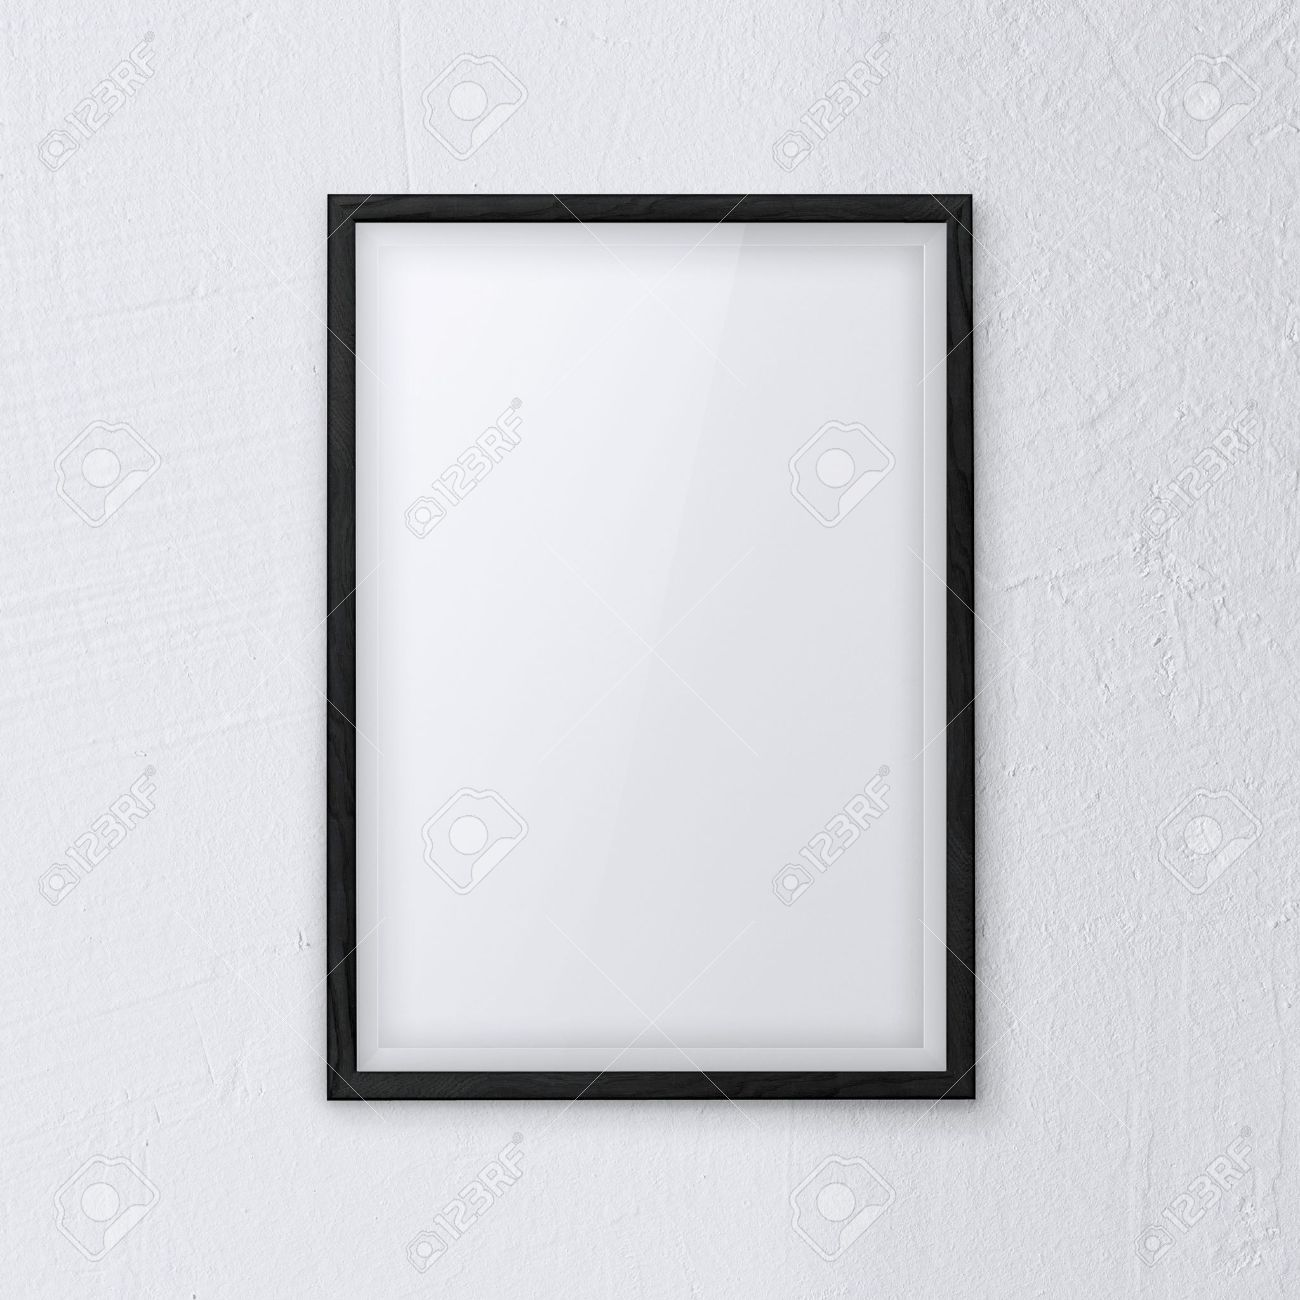 White Wall Frames texture dirty frame picture images & stock pictures. royalty free